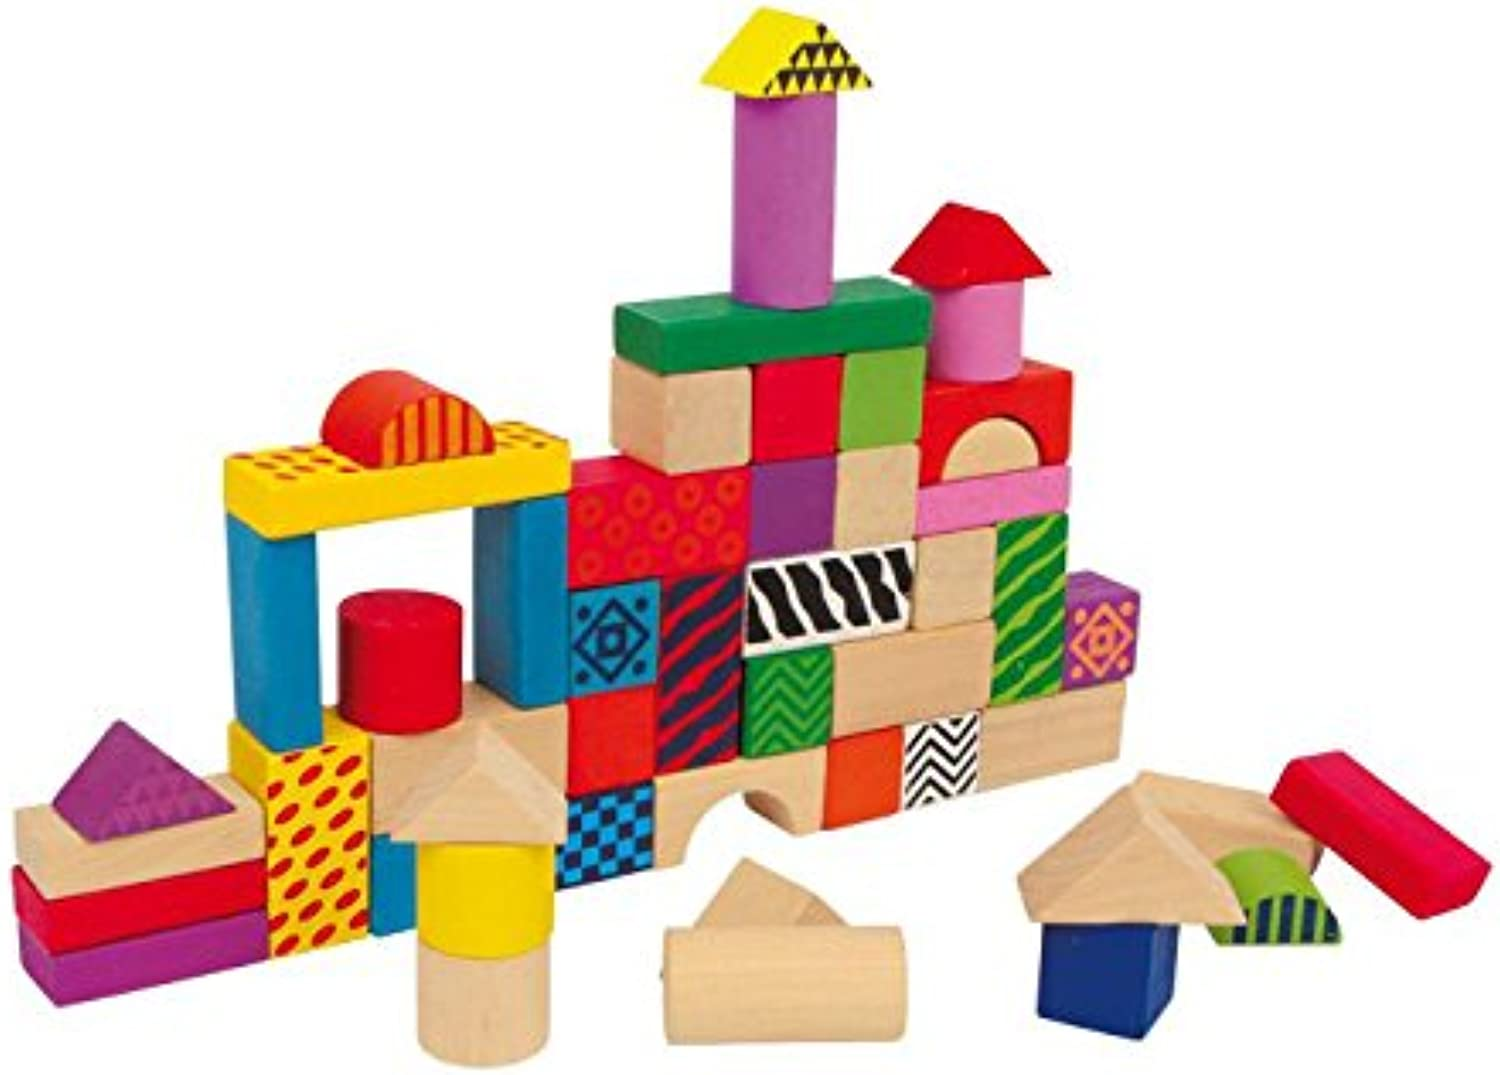 Legler Building Blocks Philip Building Sets (3 Years Old and More)